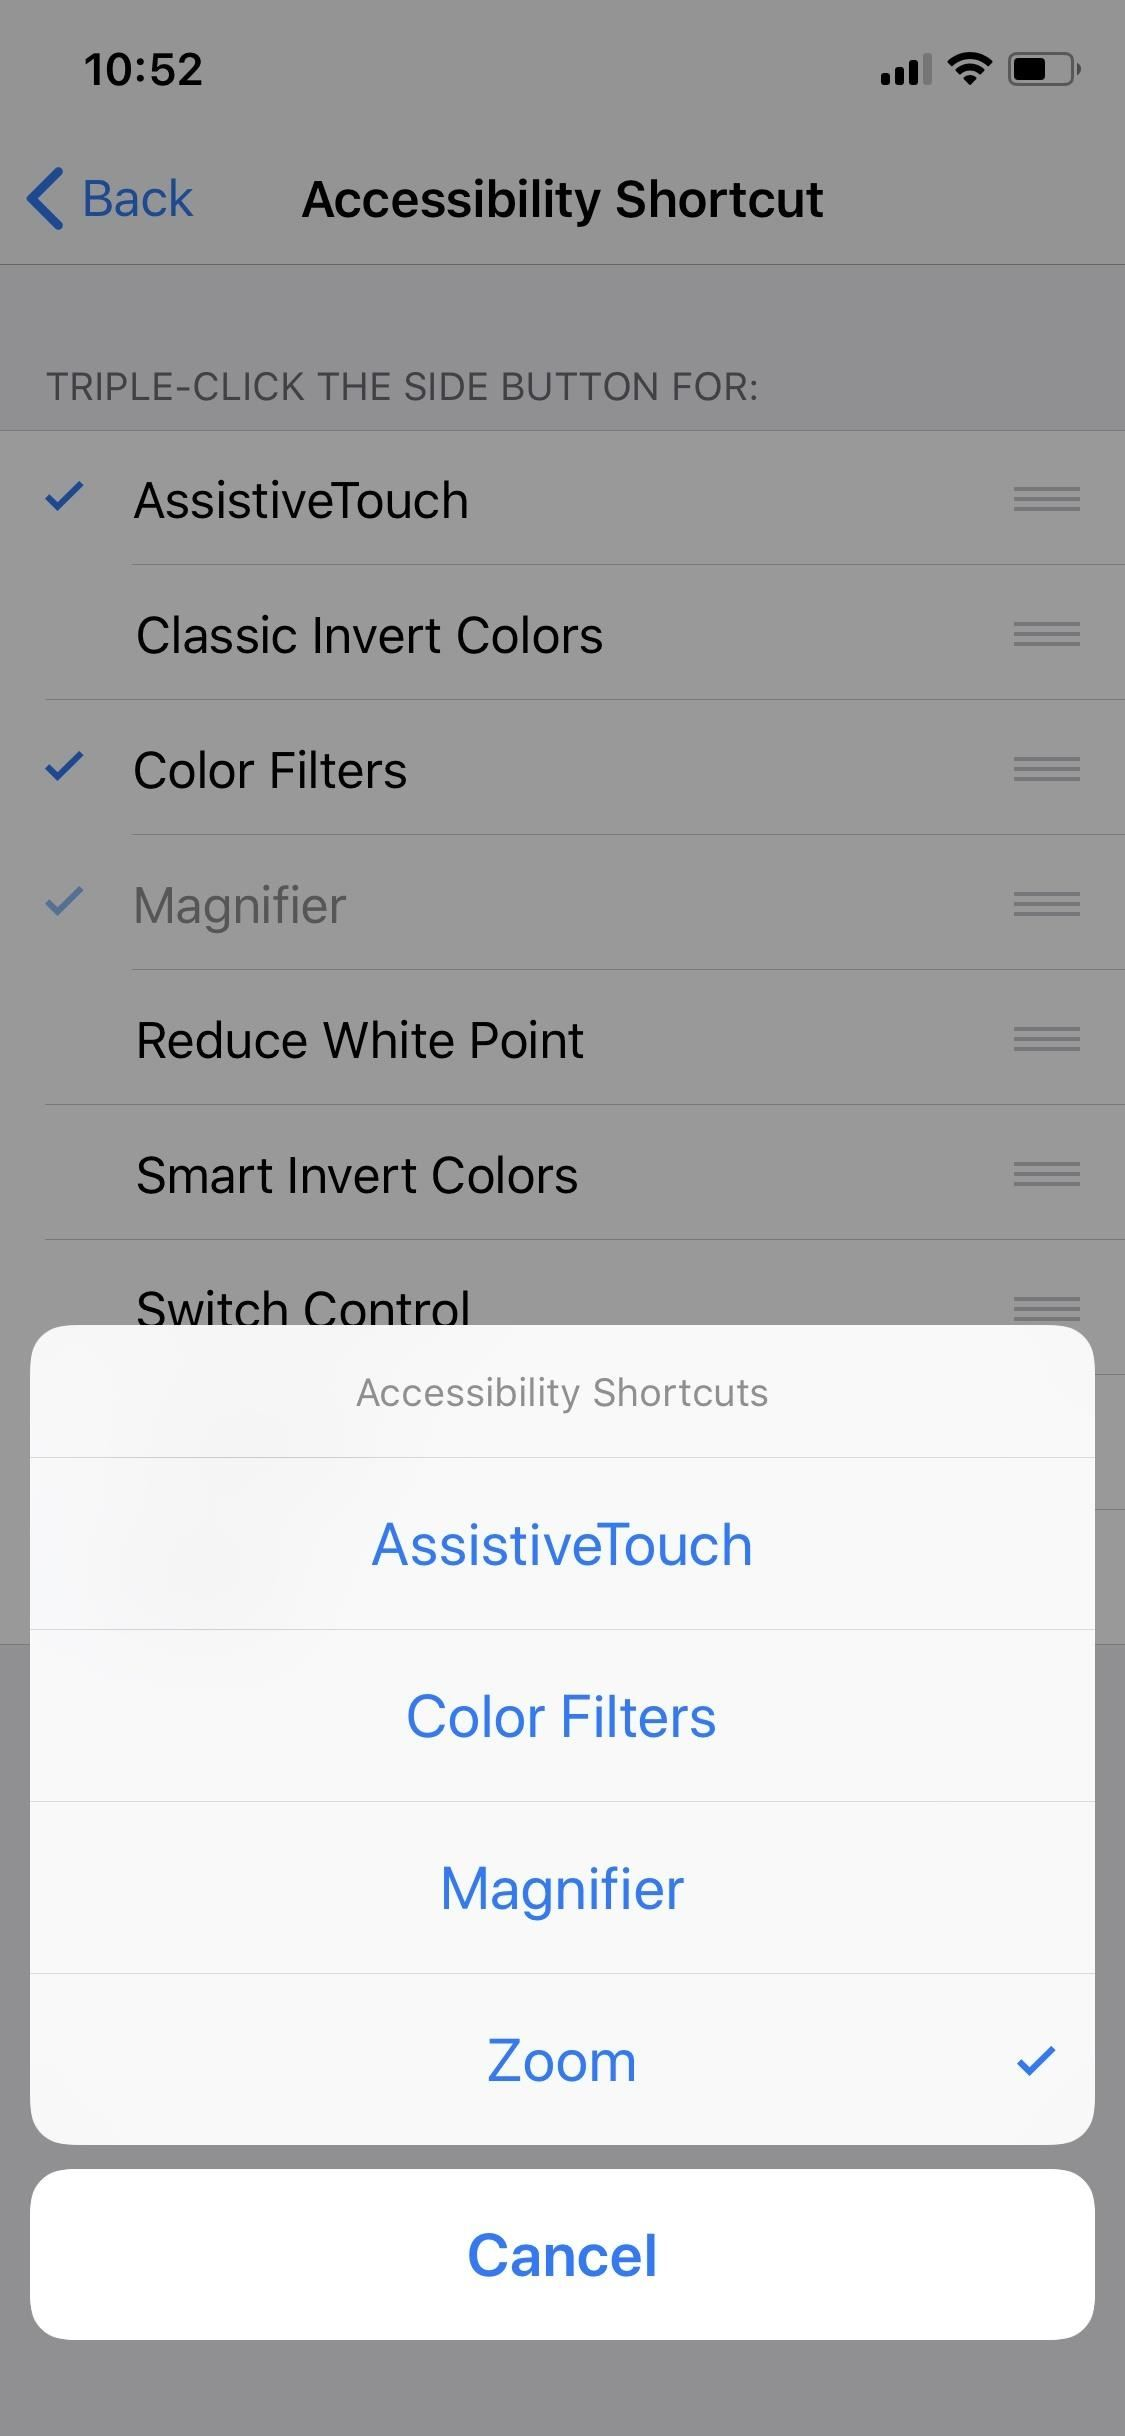 How to Open the Accessibility Shortcuts on Your iPhone X